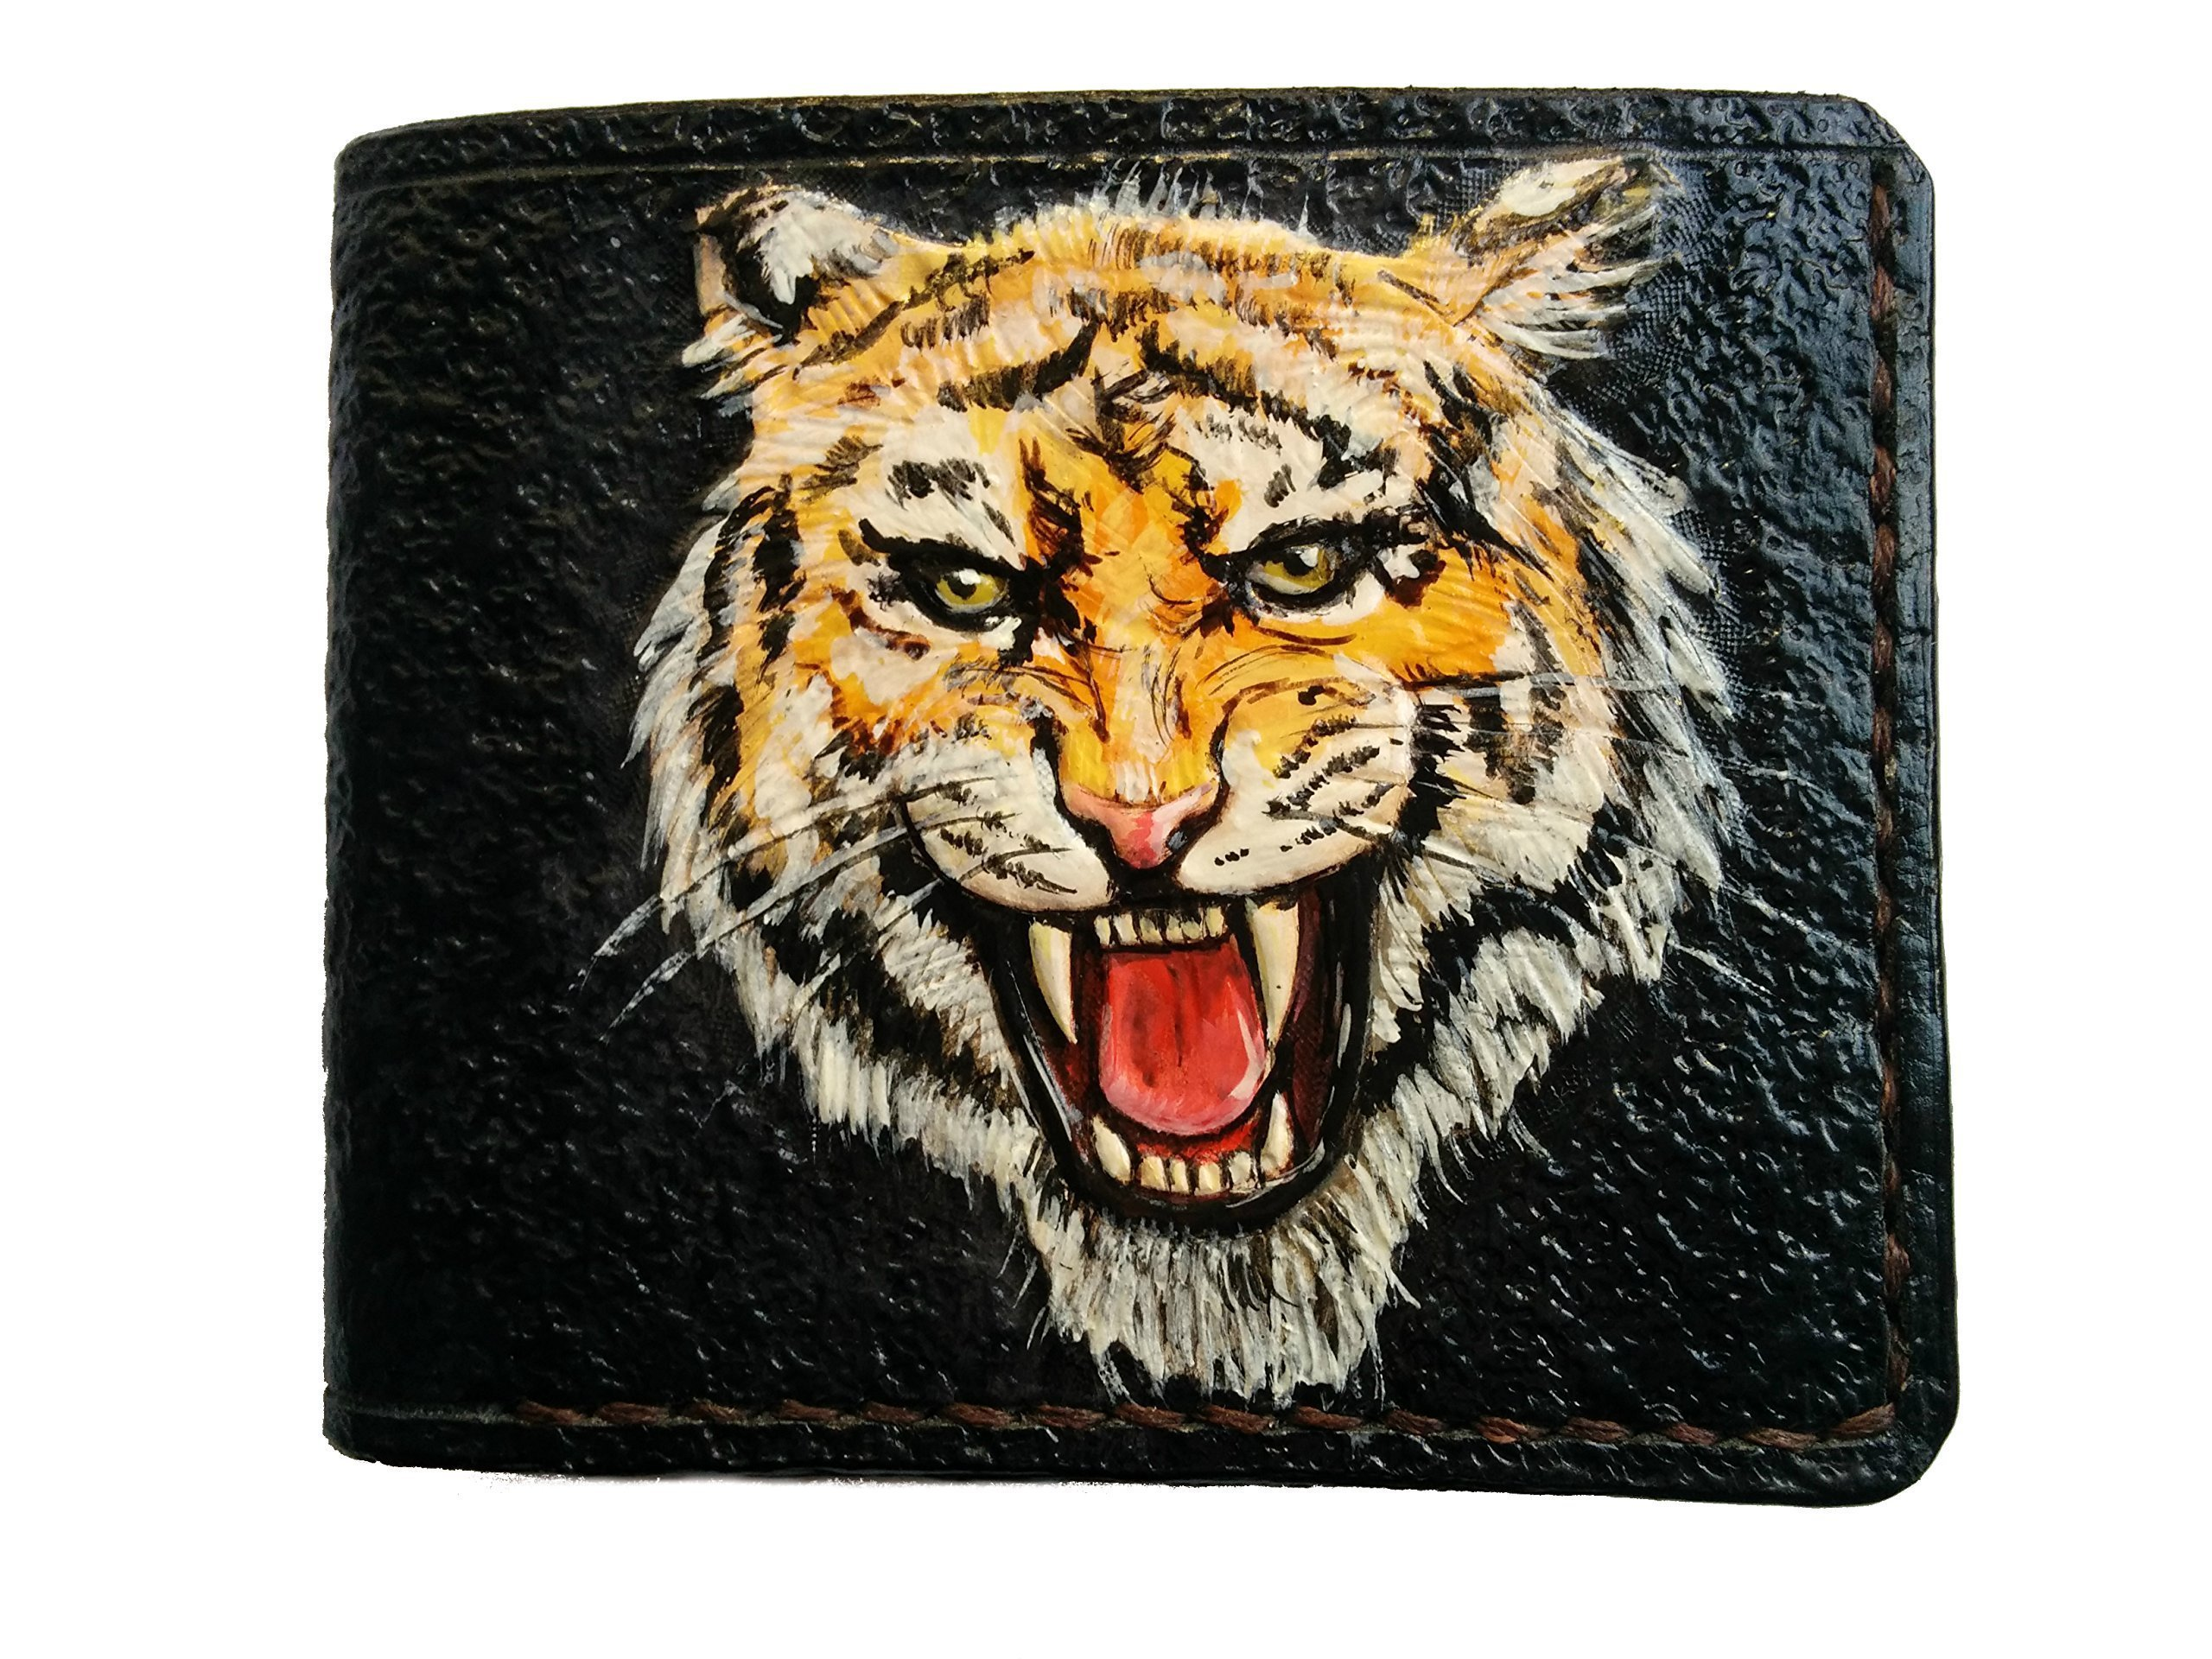 Men's 3D Genuine Leather Wallet, Hand-Carved, Hand-Painted, Leather Carving, Custom wallet, Personalized wallet, Tiger wallet, Bengal Tiger